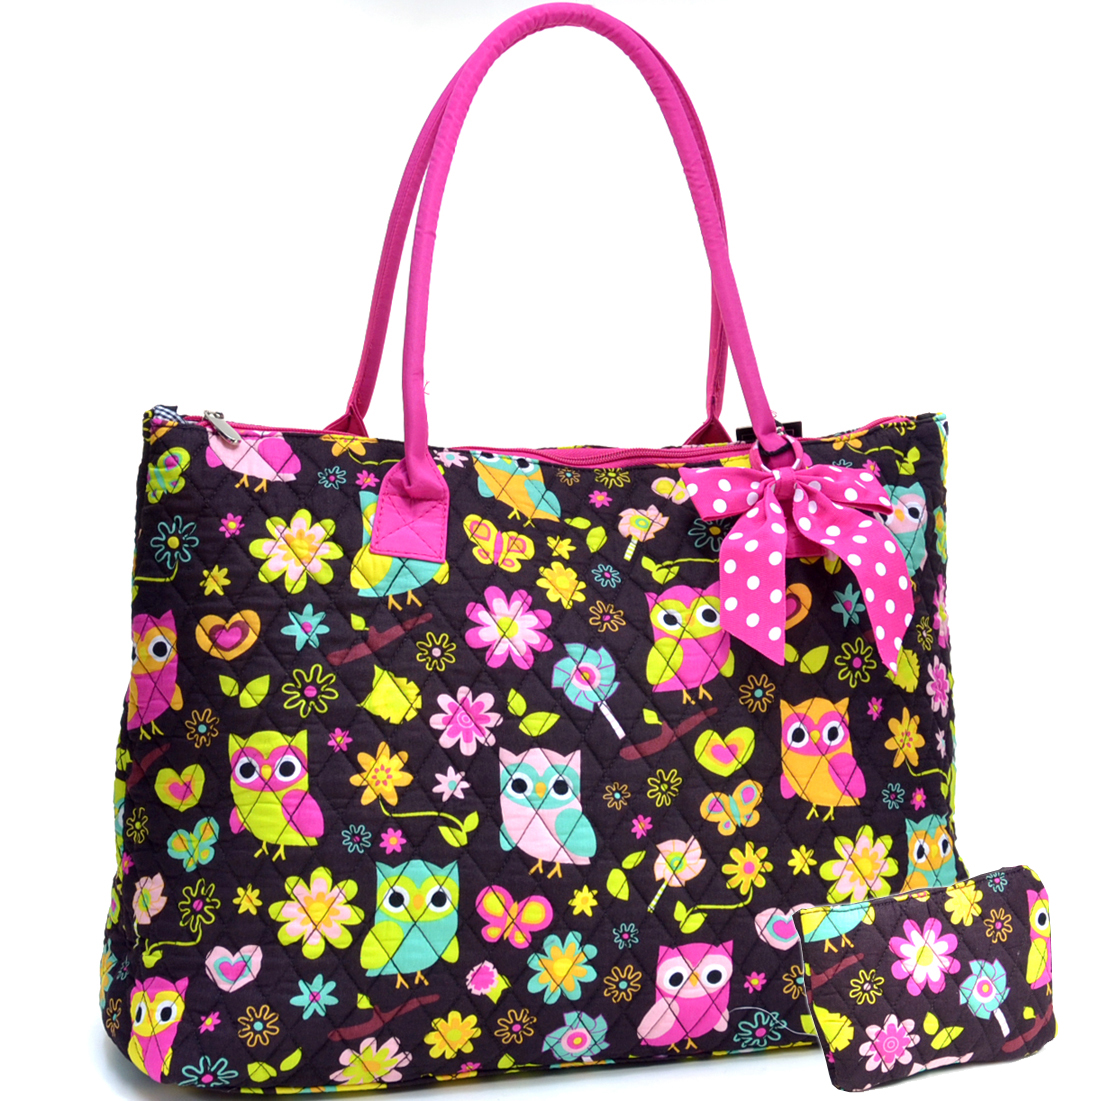 Sazy Bee Designs Owl & Floral Print Quilted Cotton Tote Bag w/Removable Bow